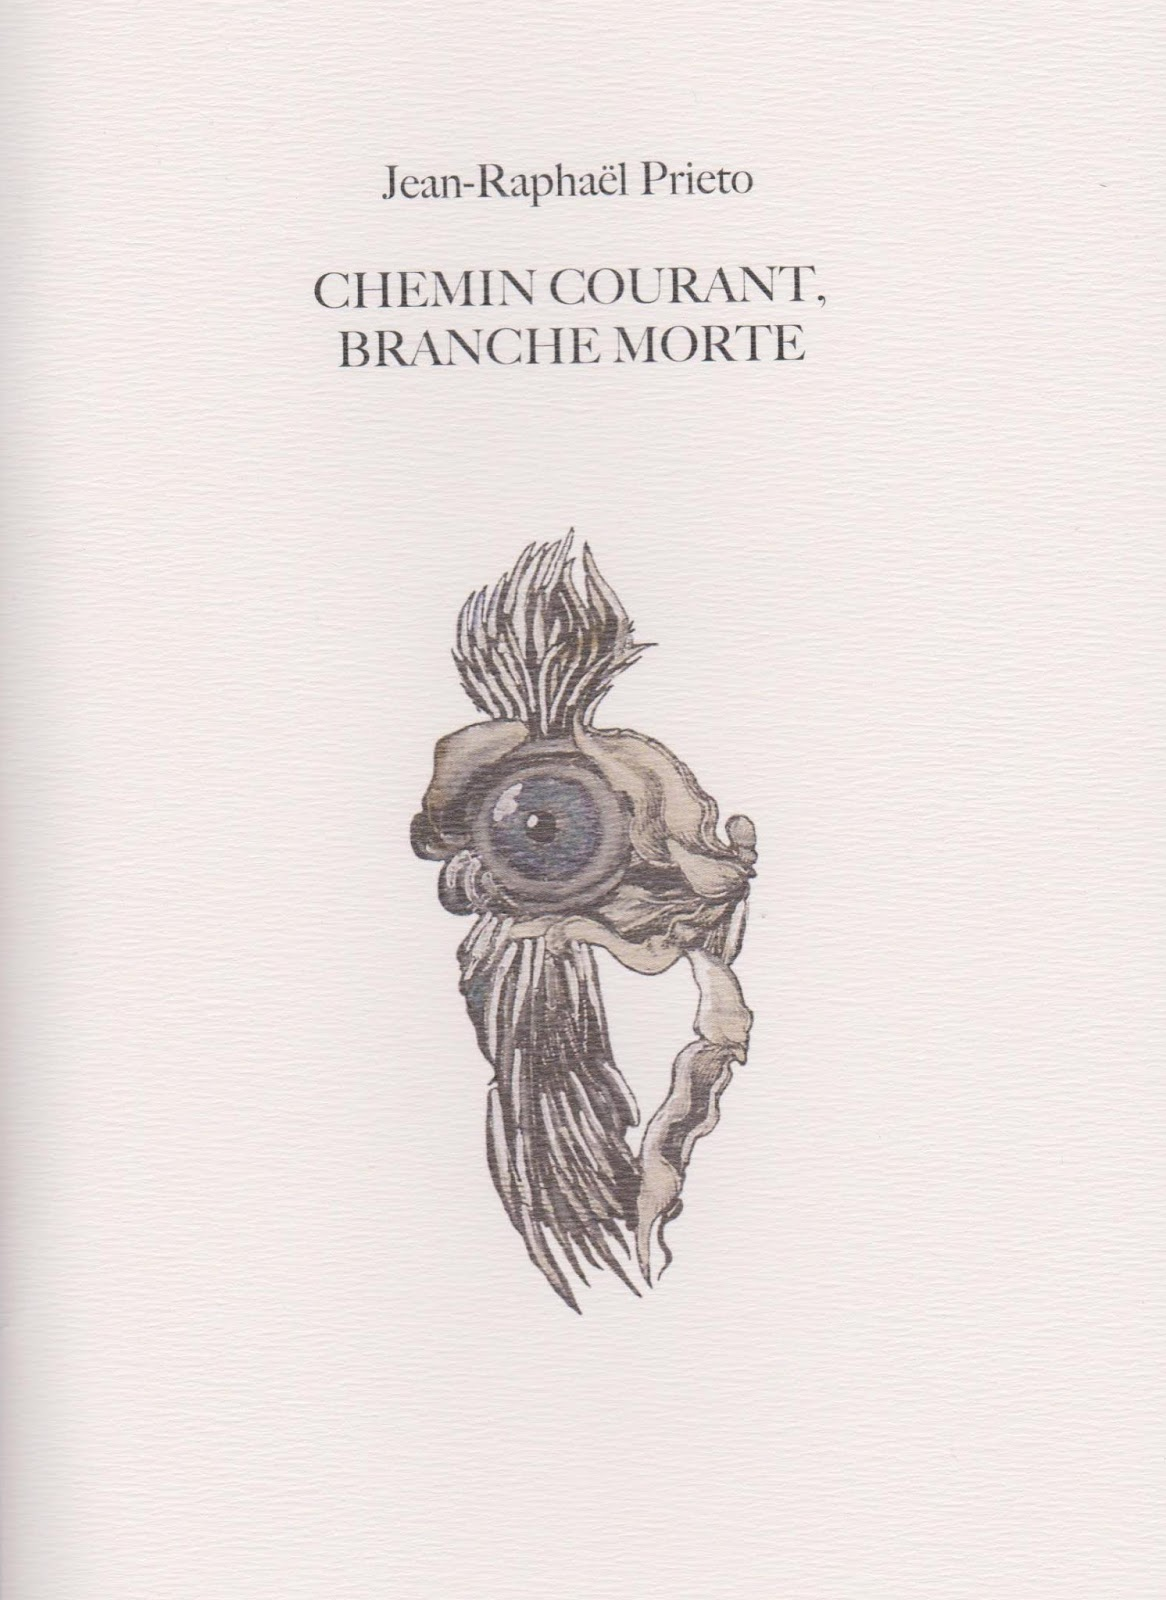 Jean-Raphaël PRIETO, Chemin courant, branche morte, Collection de l'umbo, 2018